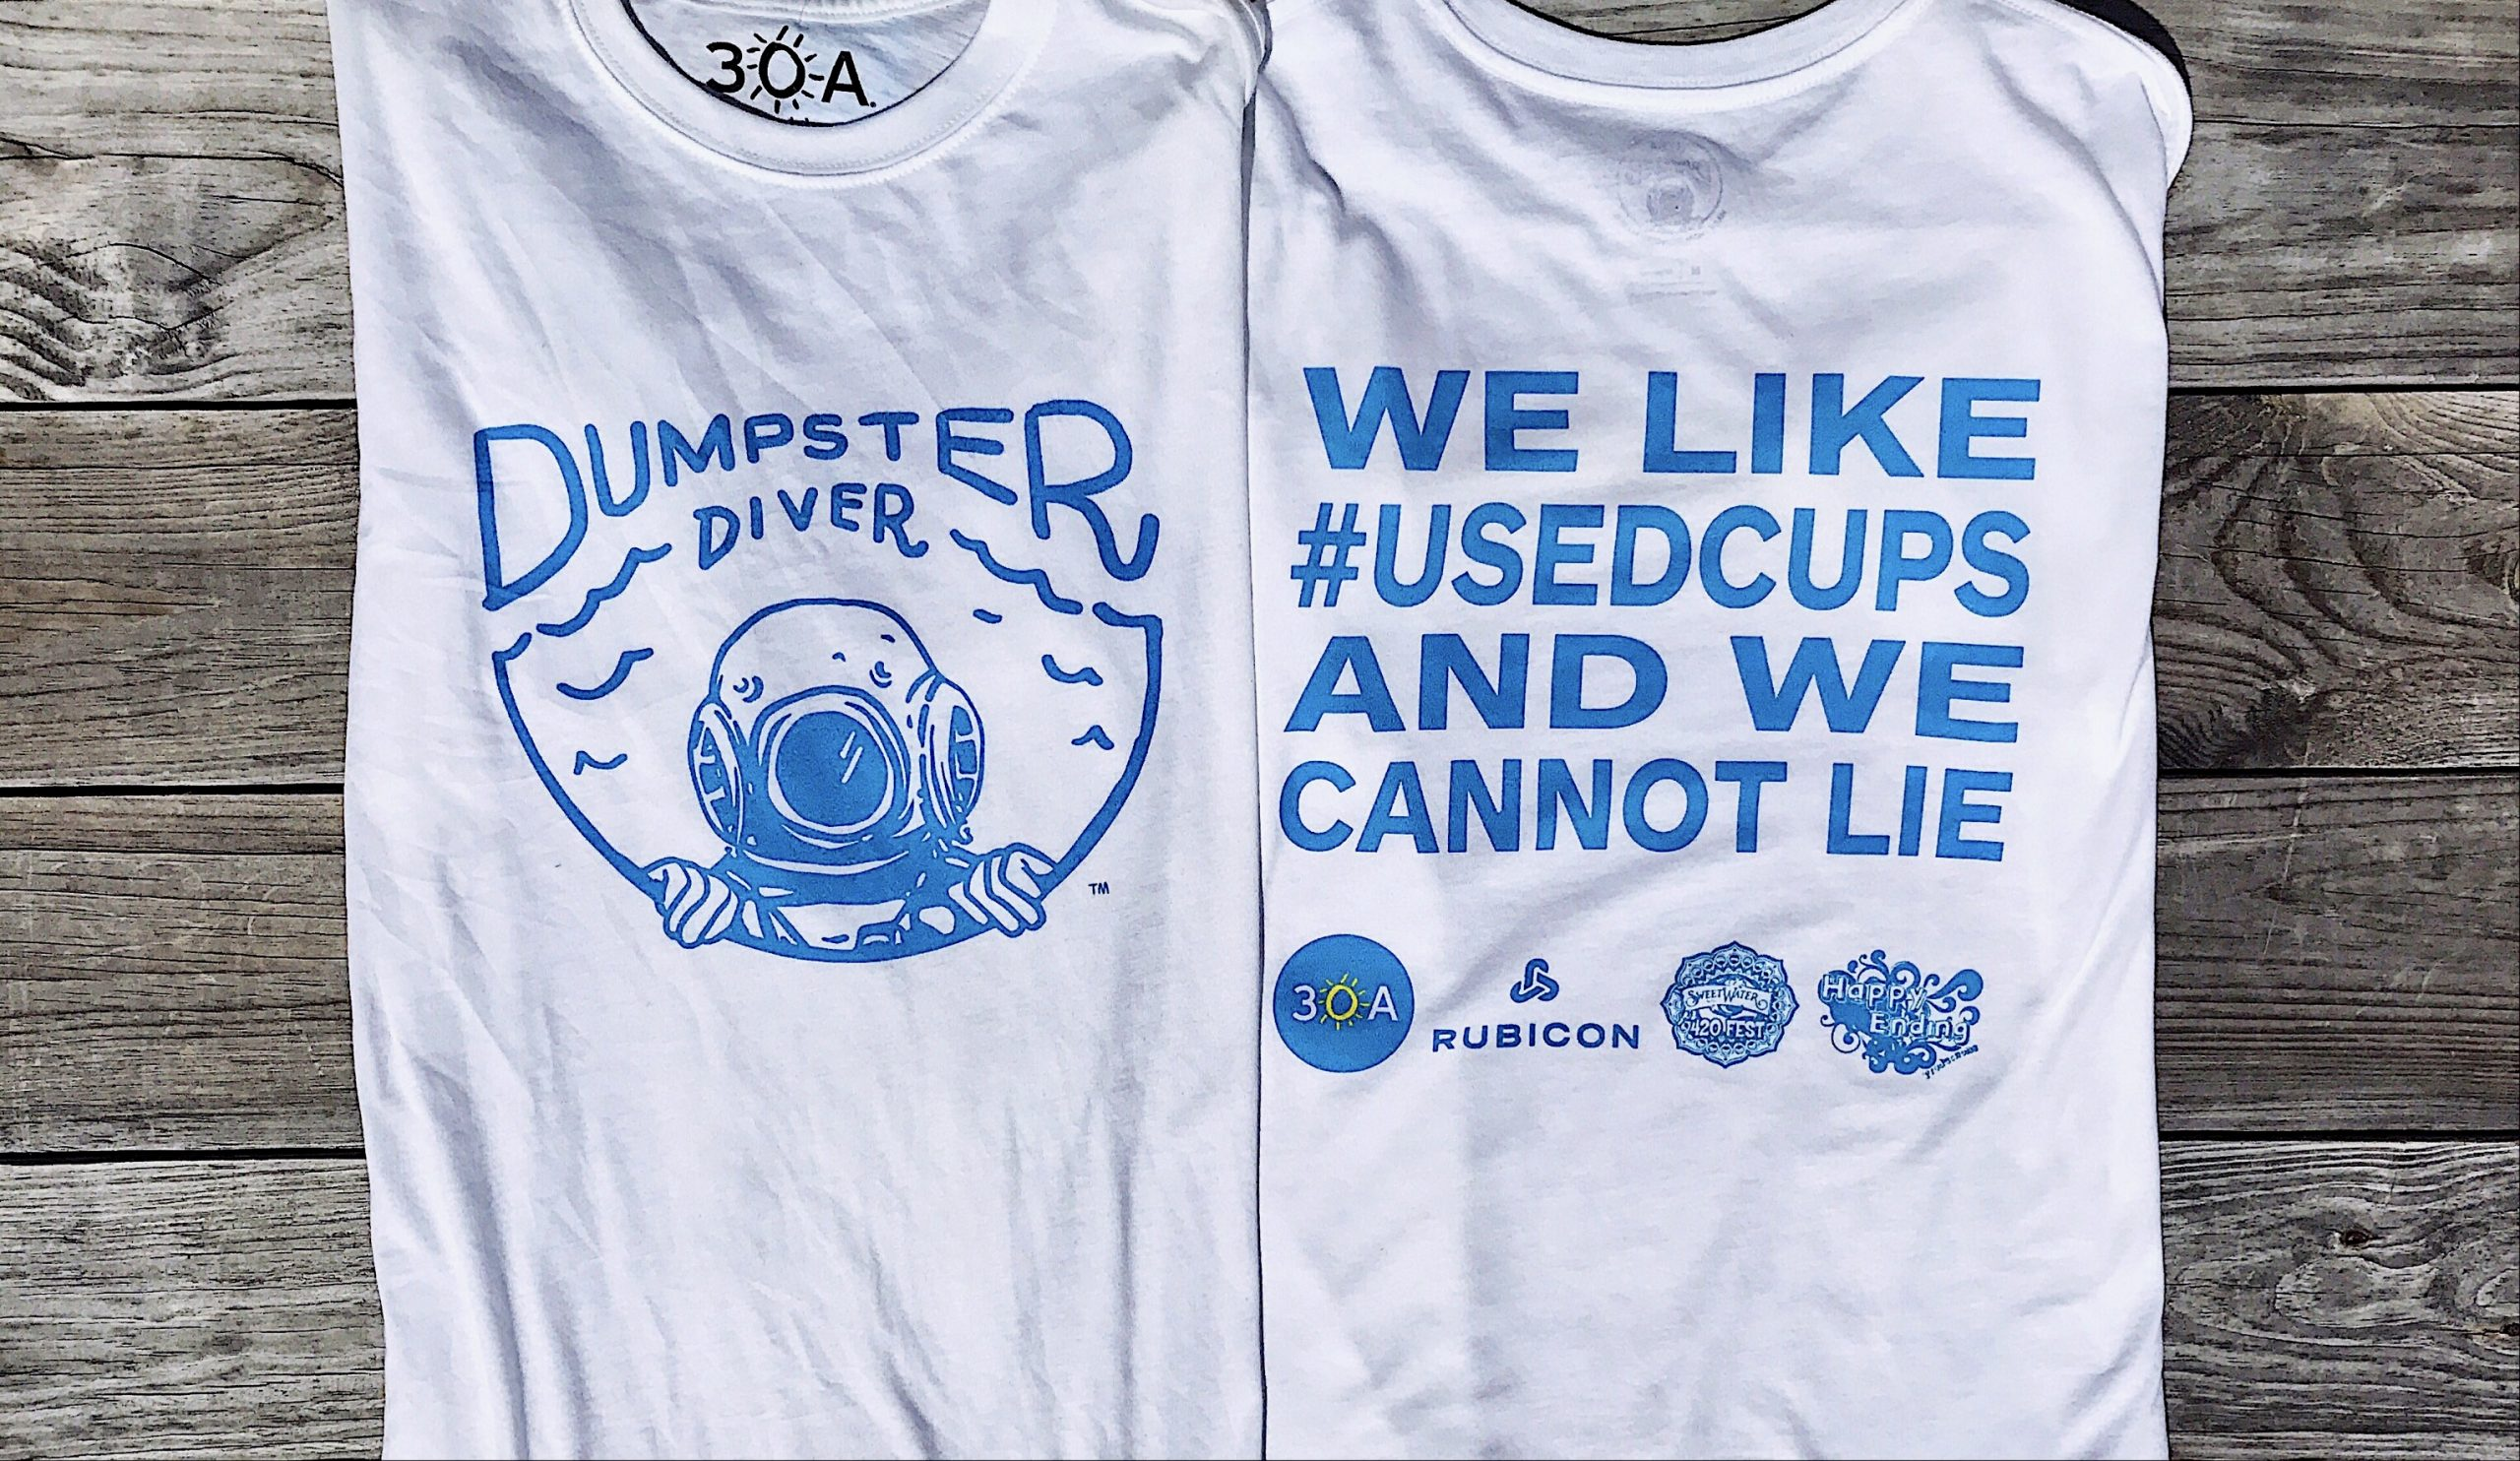 Special-Edition 30A Dumpster Diver Shirt for SweetWater 420 Fest